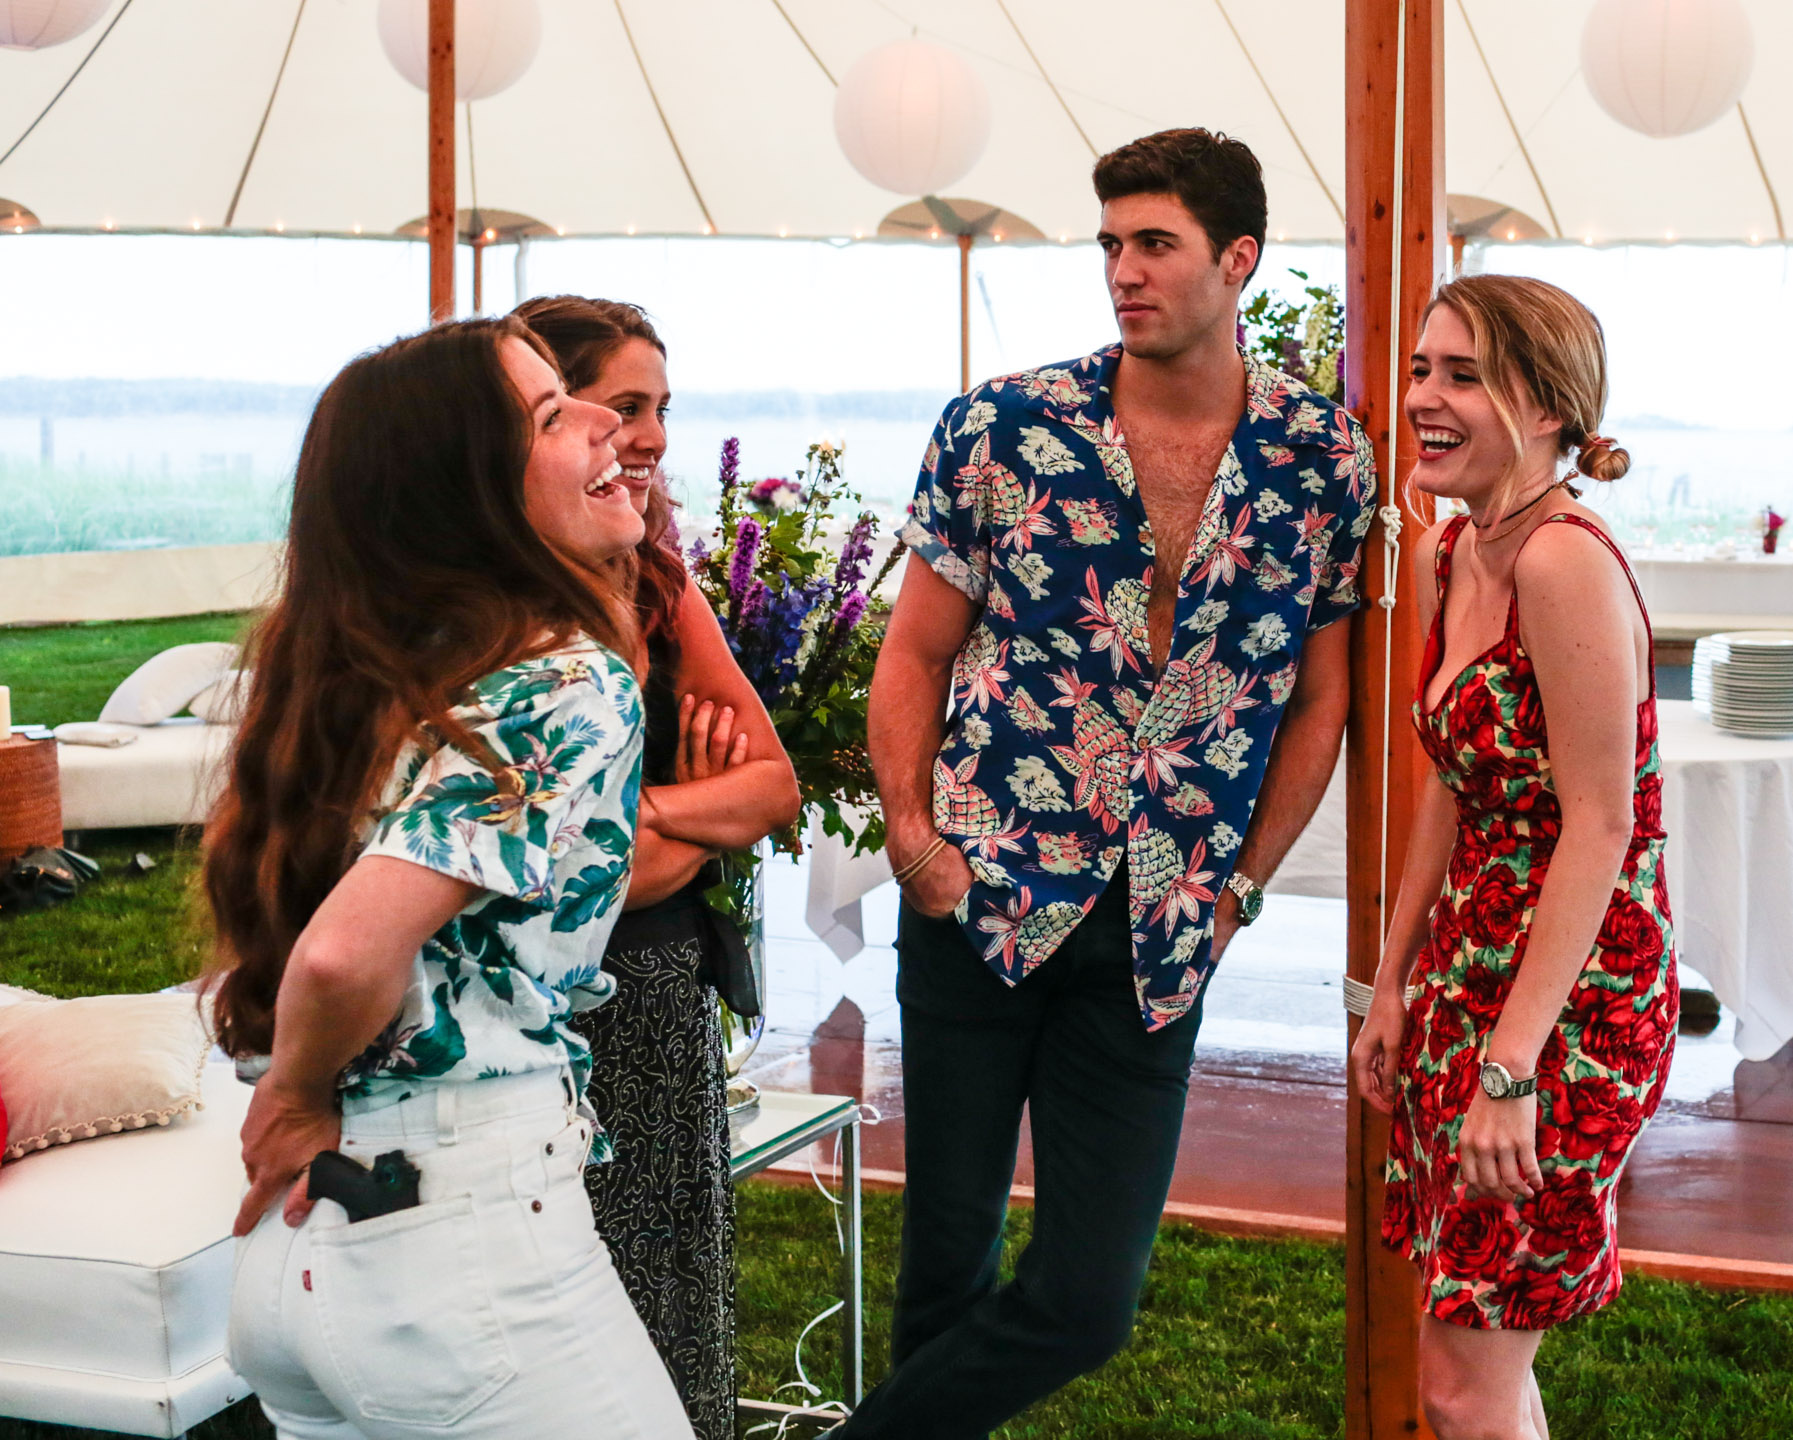 2eric_striffler_photography_event_party-10.jpg